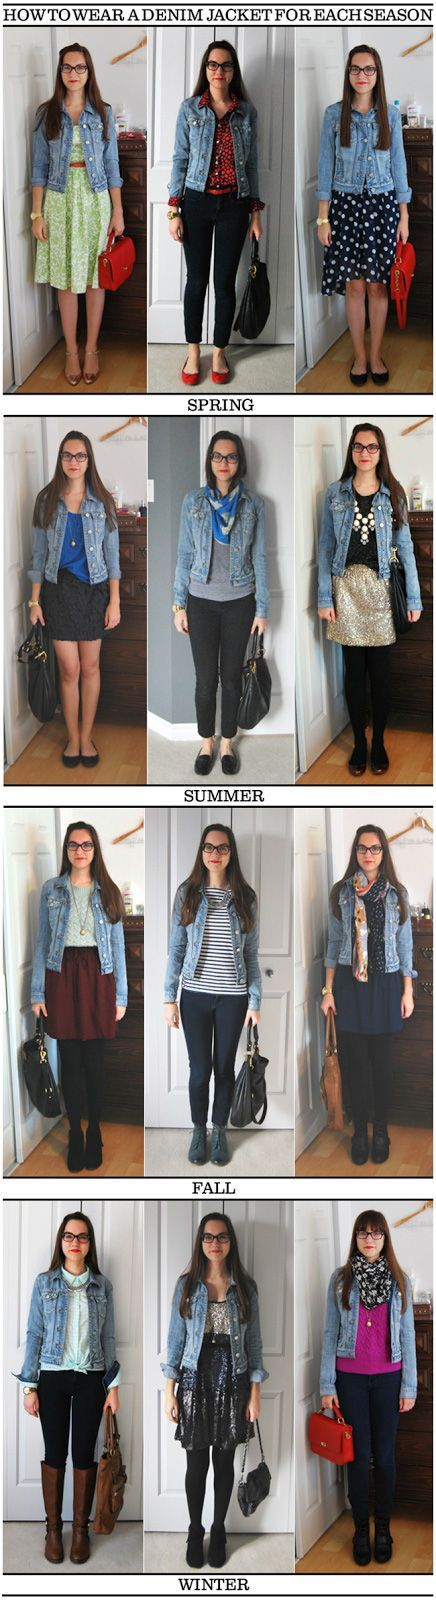 Use this simple outfit guide to figure out how to wear your denim jacket for each season.